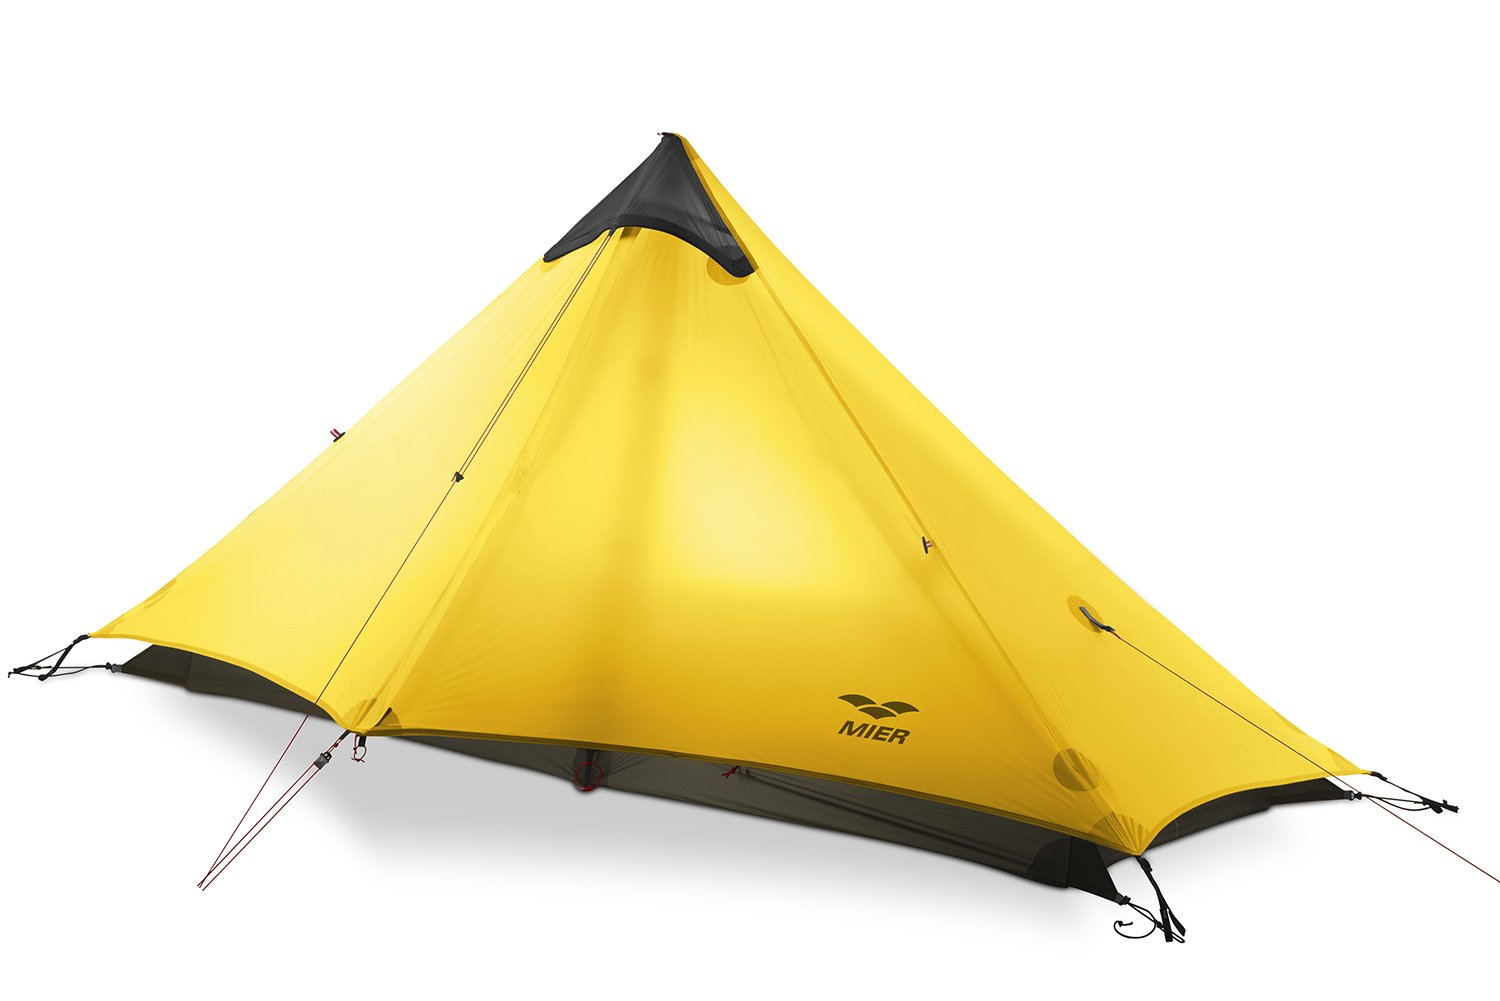 MIER Ultralight Tent 3-Season Backpacking Tent for 1-Person or 2-Person Camping, Trekking, Kayaking, Climbing, Hiking (Trekking Pole is NOT Included), Yellow, 1-Person by MIER